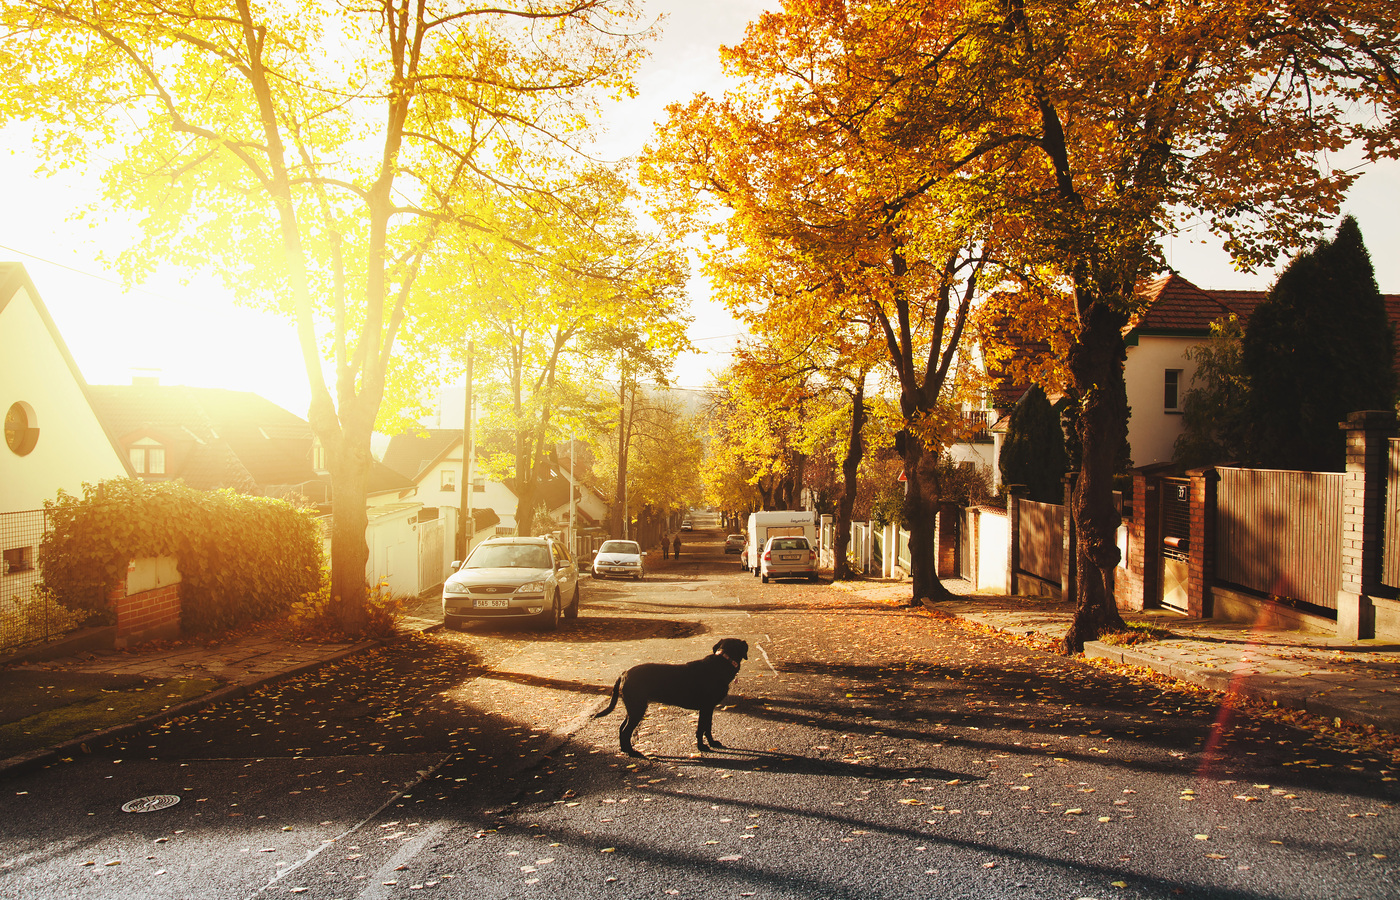 dog-on-concrete-road-homes-trees-sunlights-4k-i6.jpg